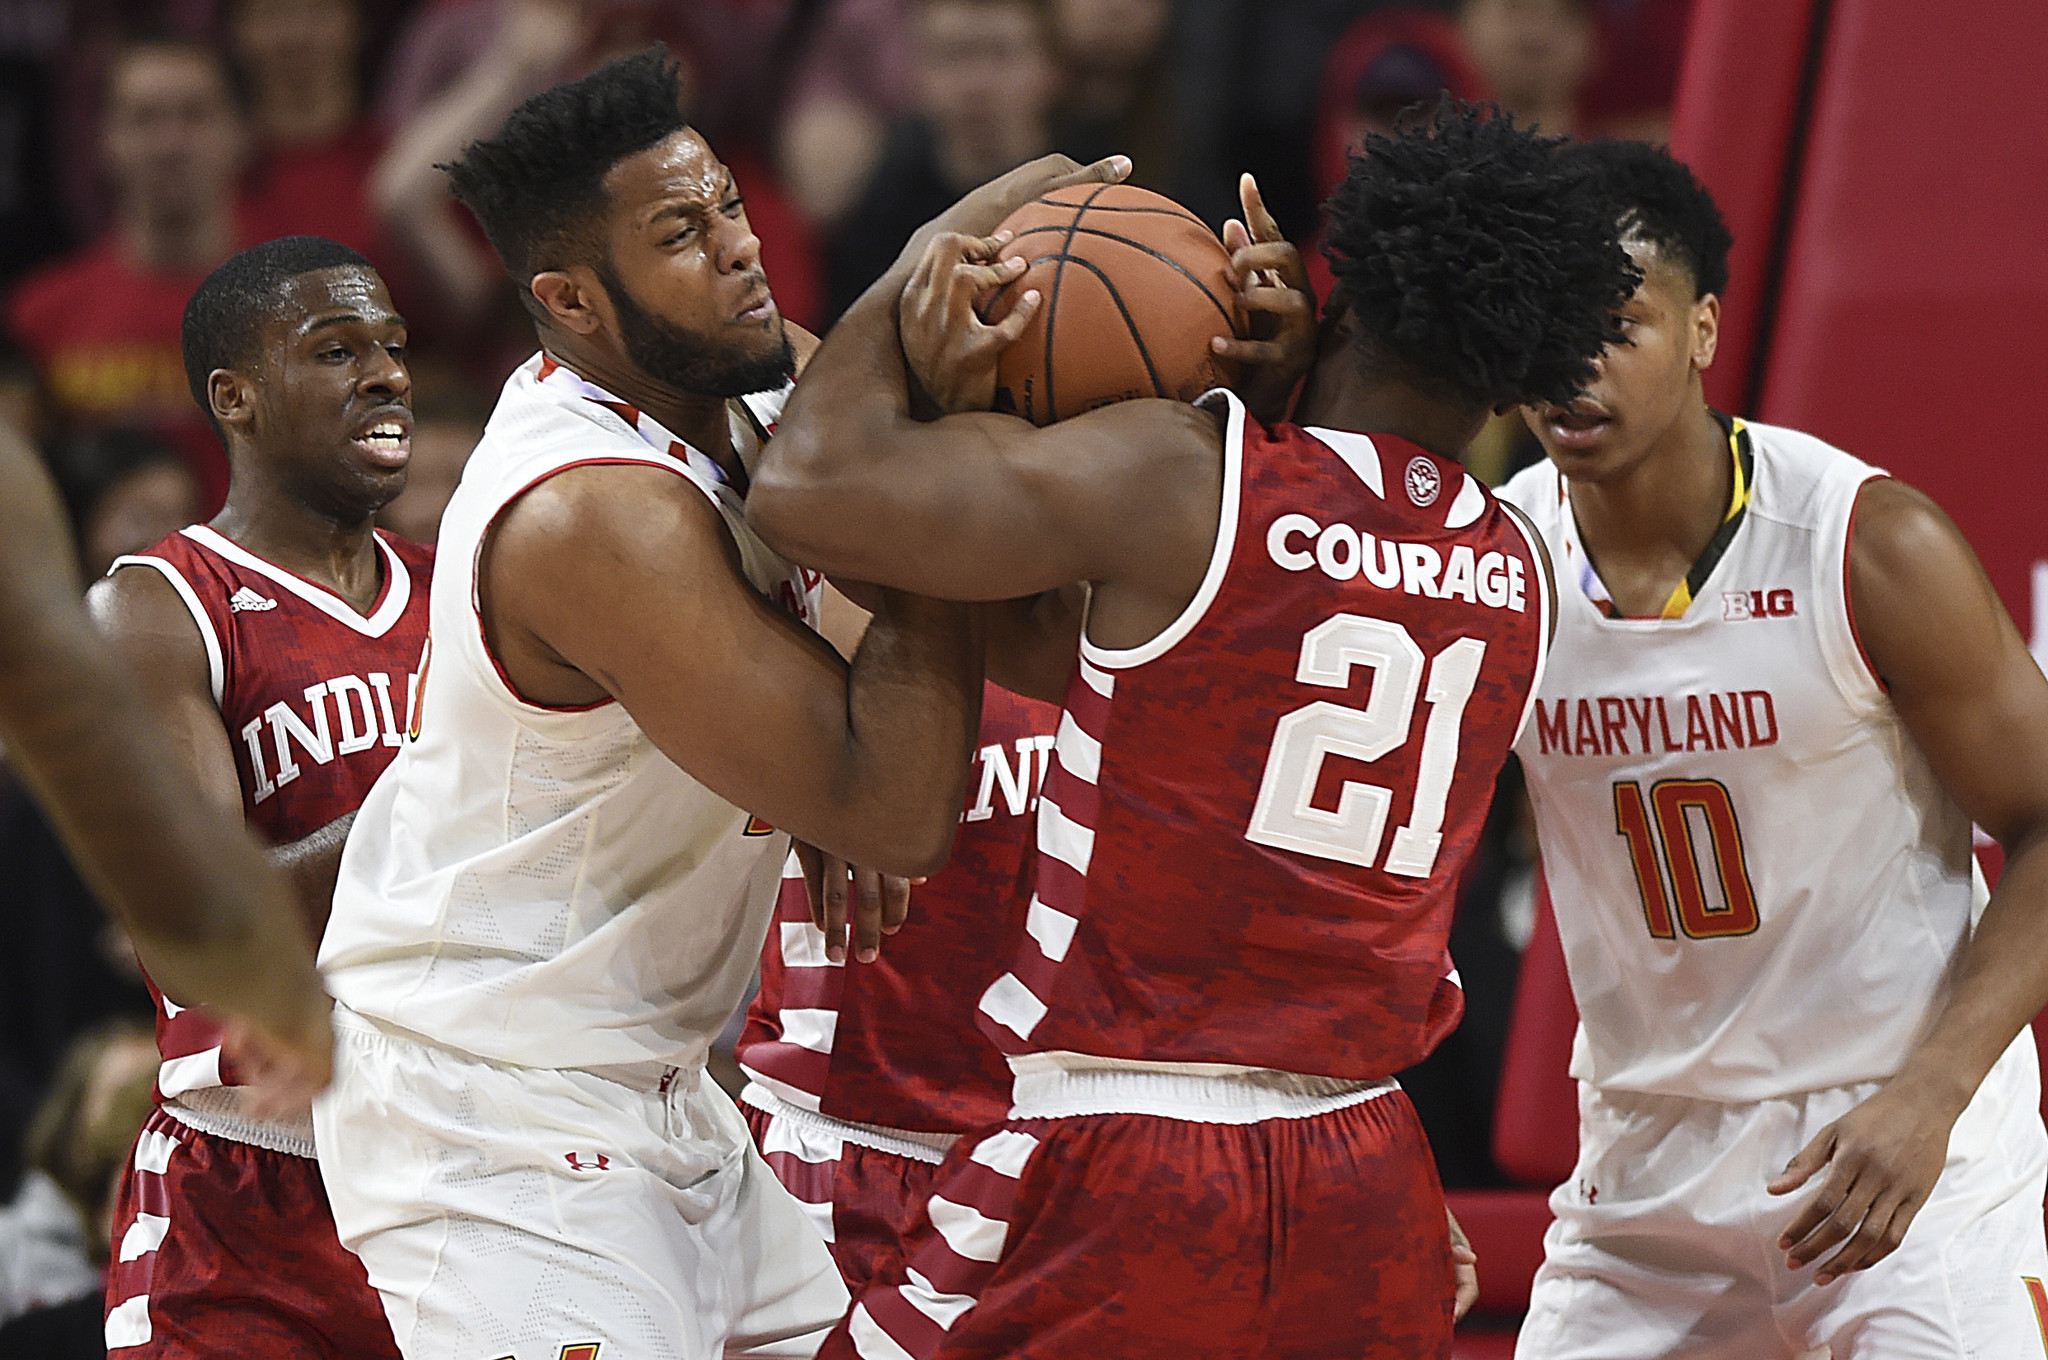 Maryland beats Indiana 75 72 in what felt like a Top 25 game